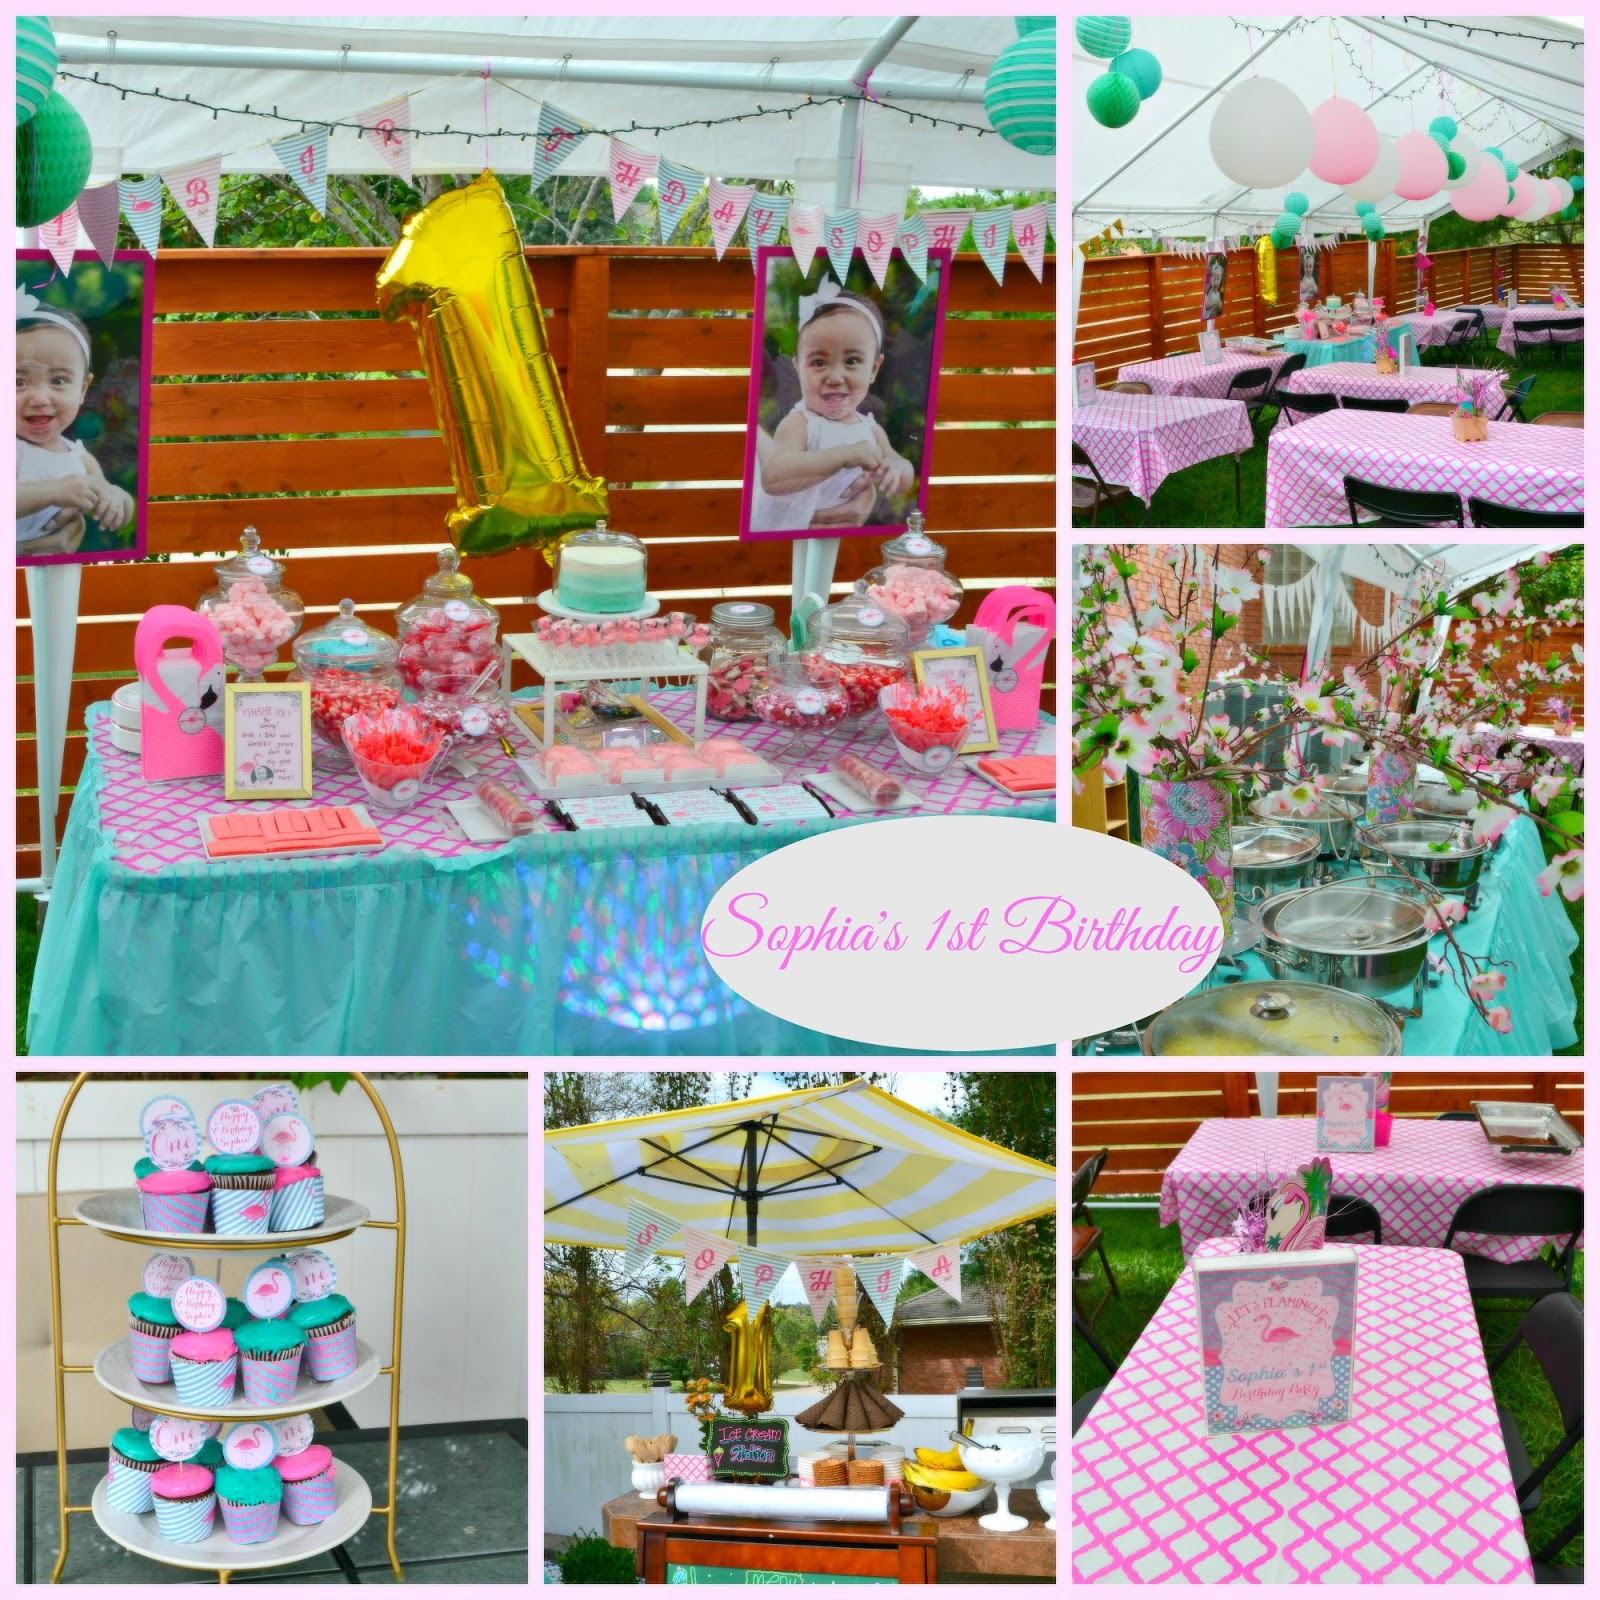 Sophias 1st Birthday Flamingle Party Decorations And Sweets Table